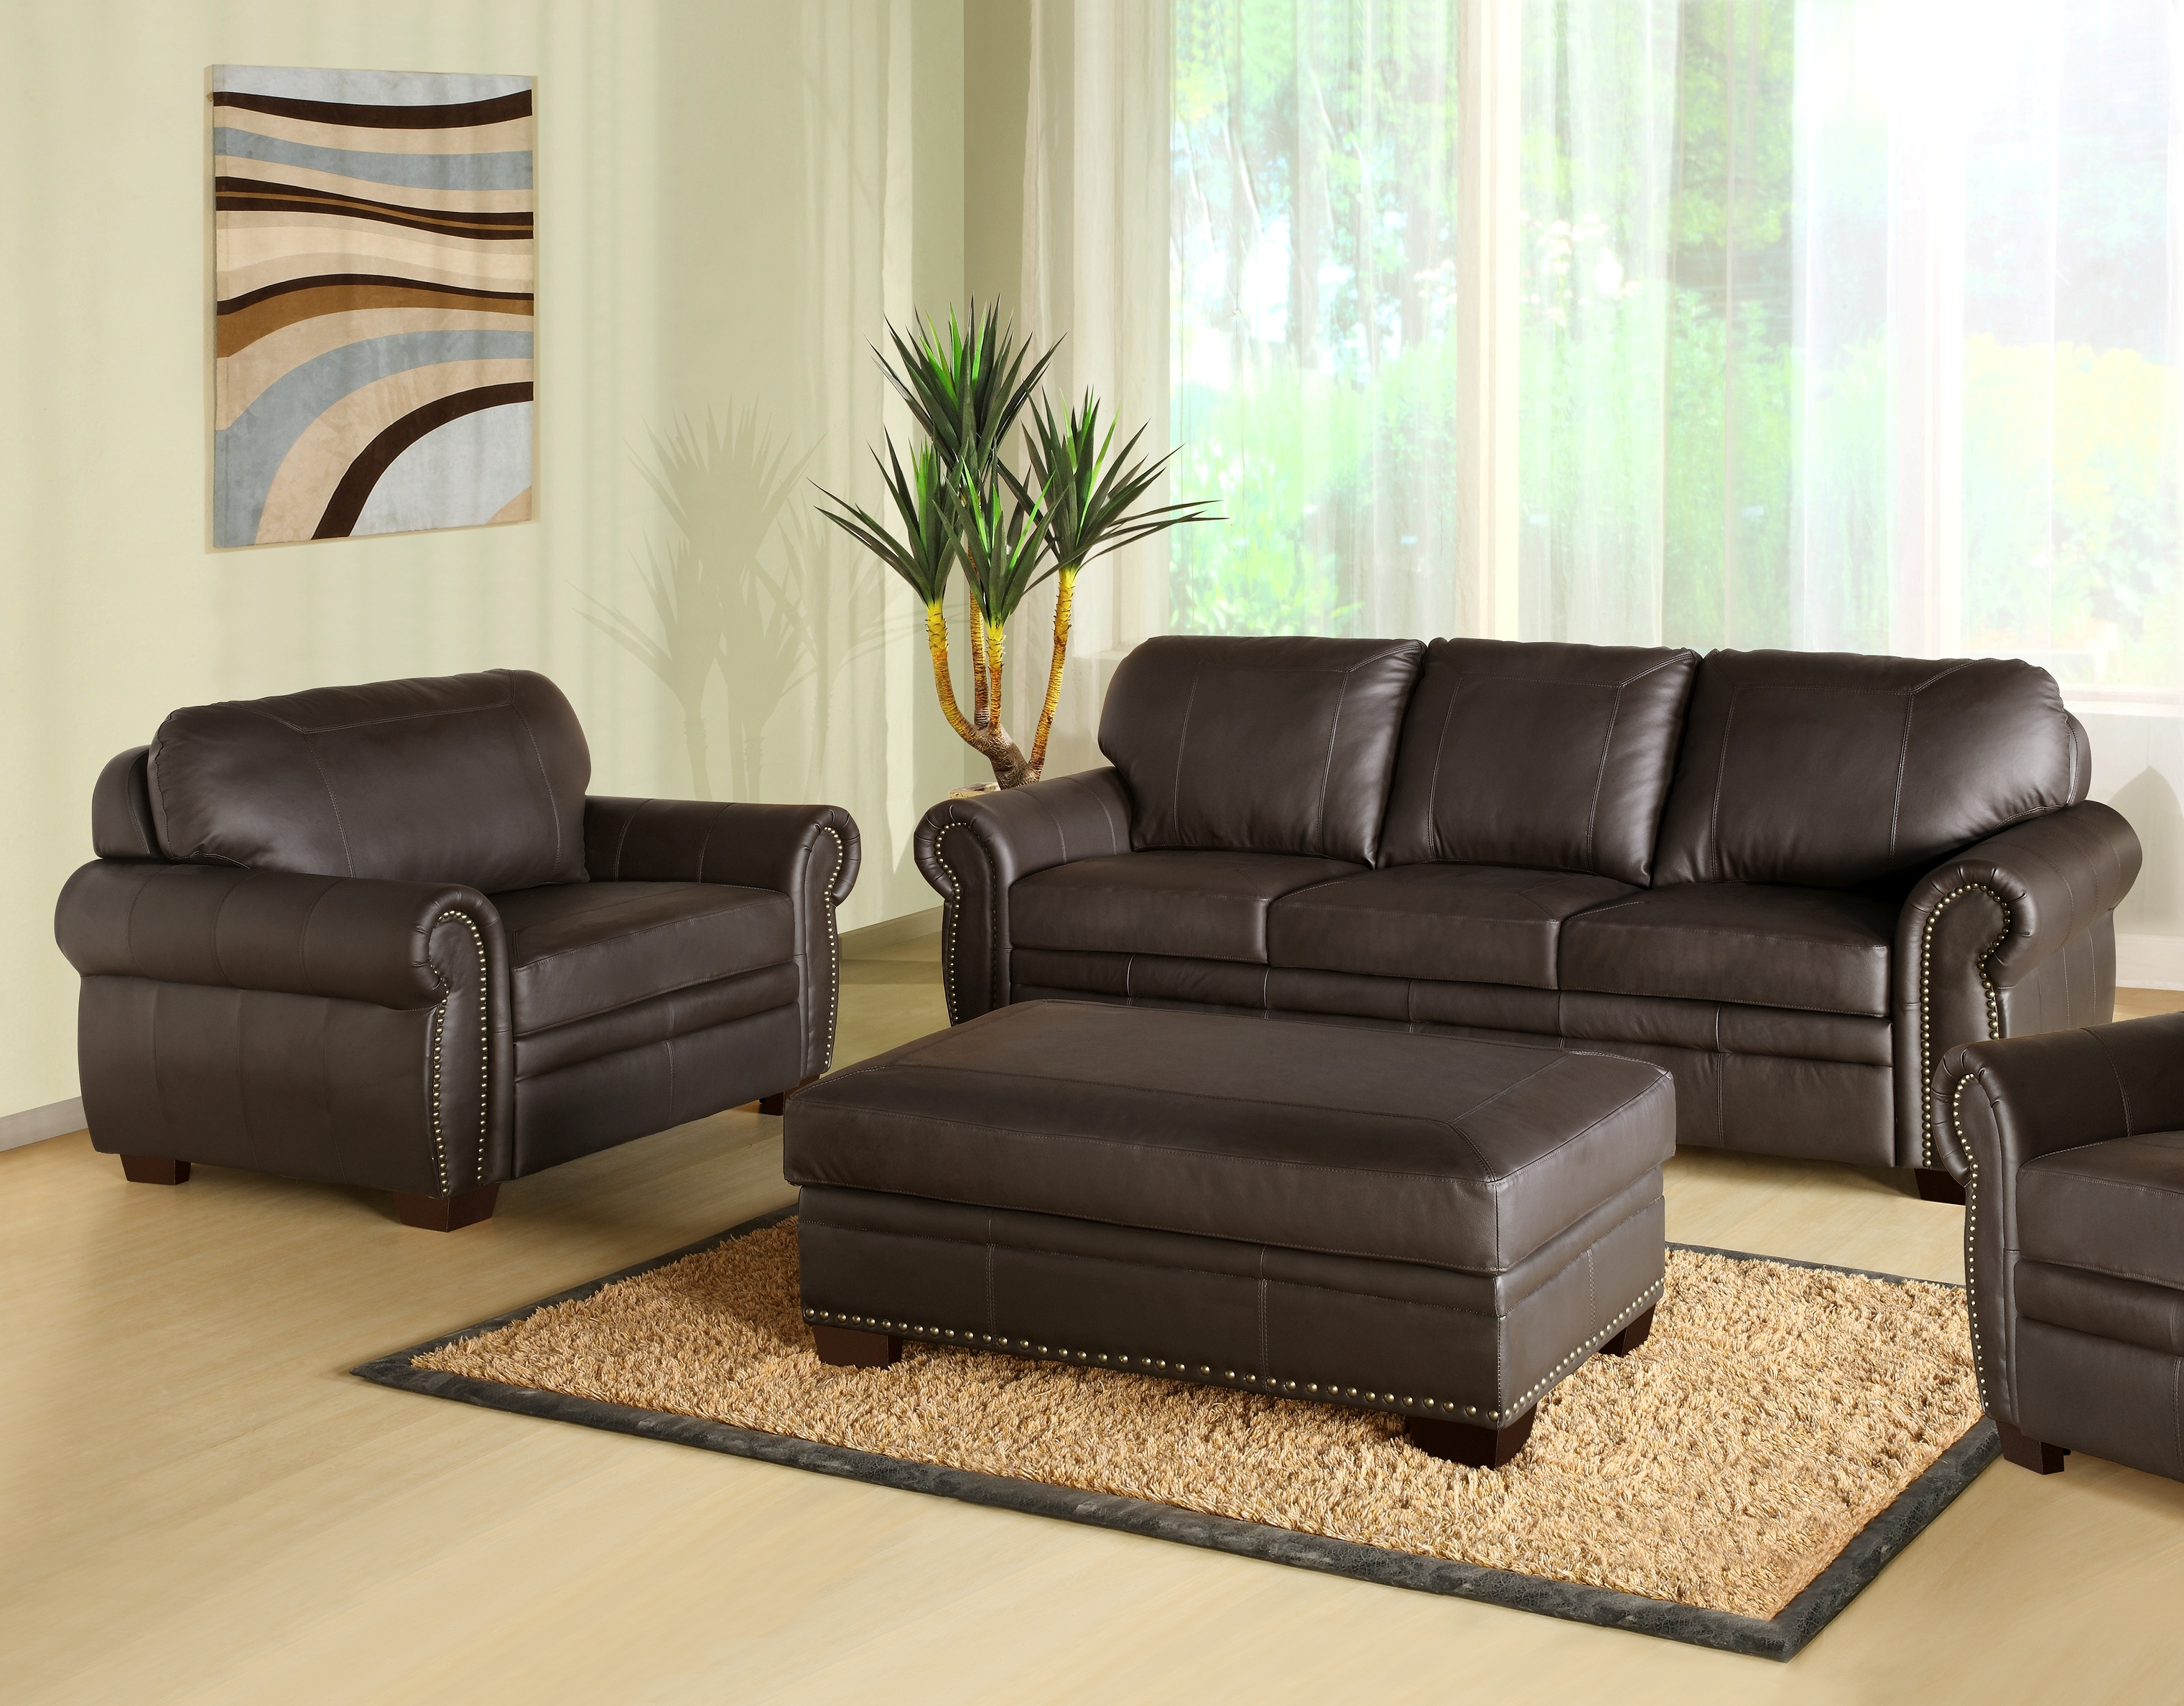 Top Sofa And Ottoman With Image 9 Of 15 Carehouse Inside Abbyson Living Charlotte Dark Brown Sectional Sofa And Ottoman (Image 15 of 15)